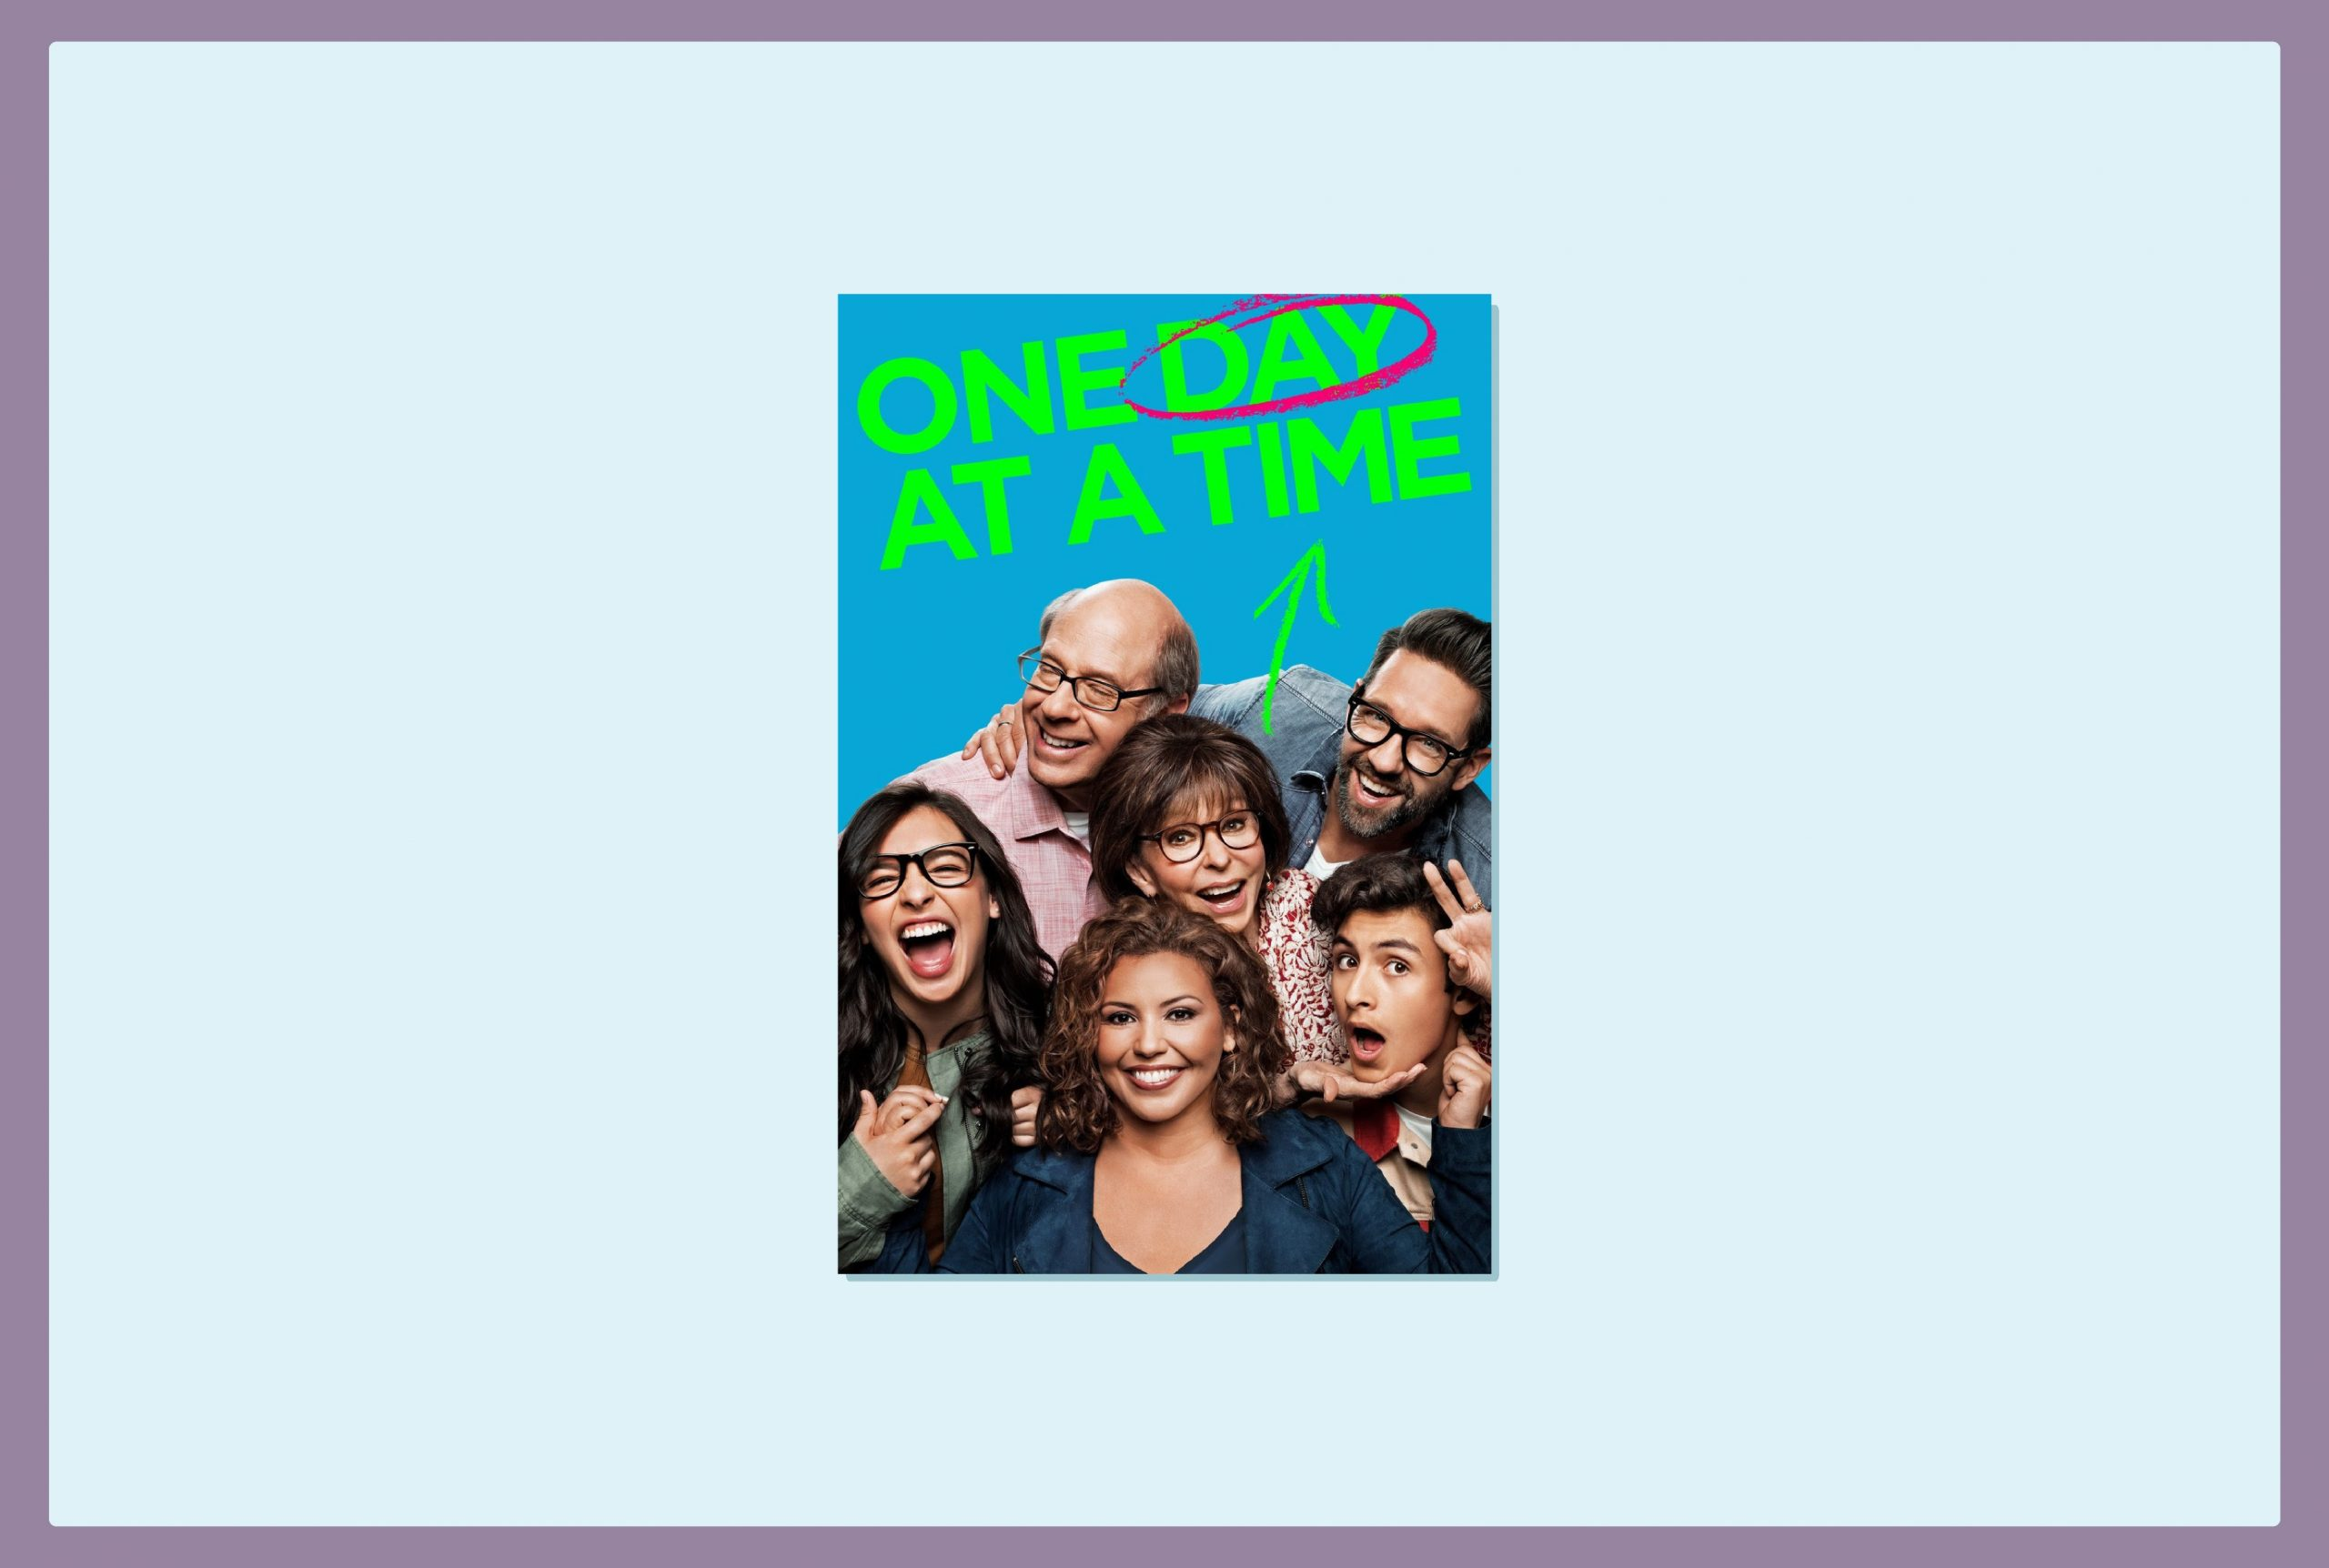 Six people— family and friends— three Latino women, one Latino teenage boy and two white men huddle together and pose quirkily for a photo. An arrow from one of the white men's shoulder leads to the title 'One Day at a time' written in neon green and 'day' circled in purple